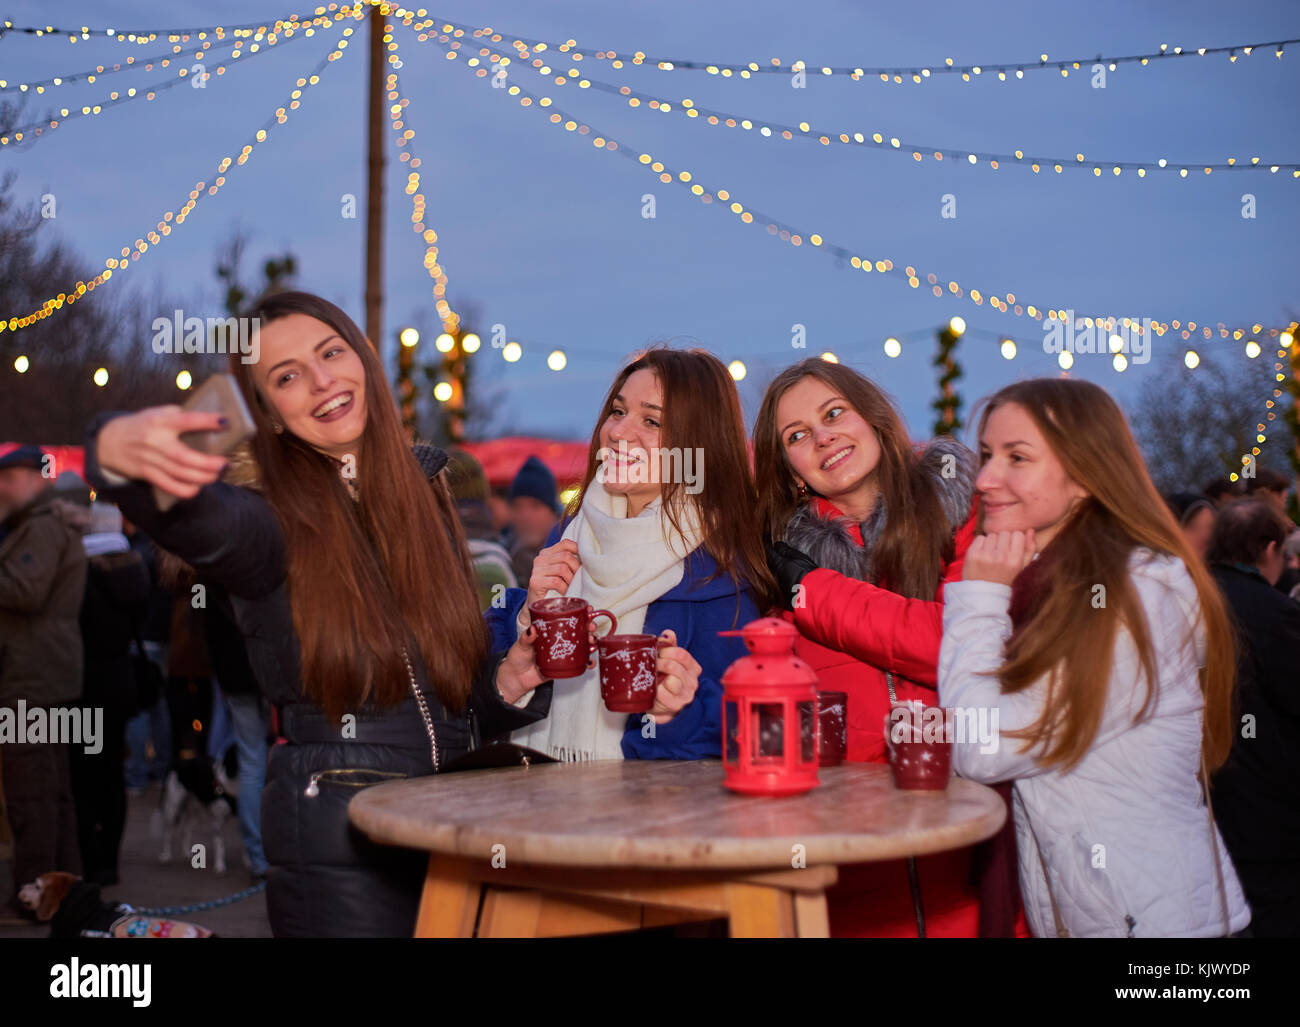 Four young woman making photos at Christmas market - Stock Image